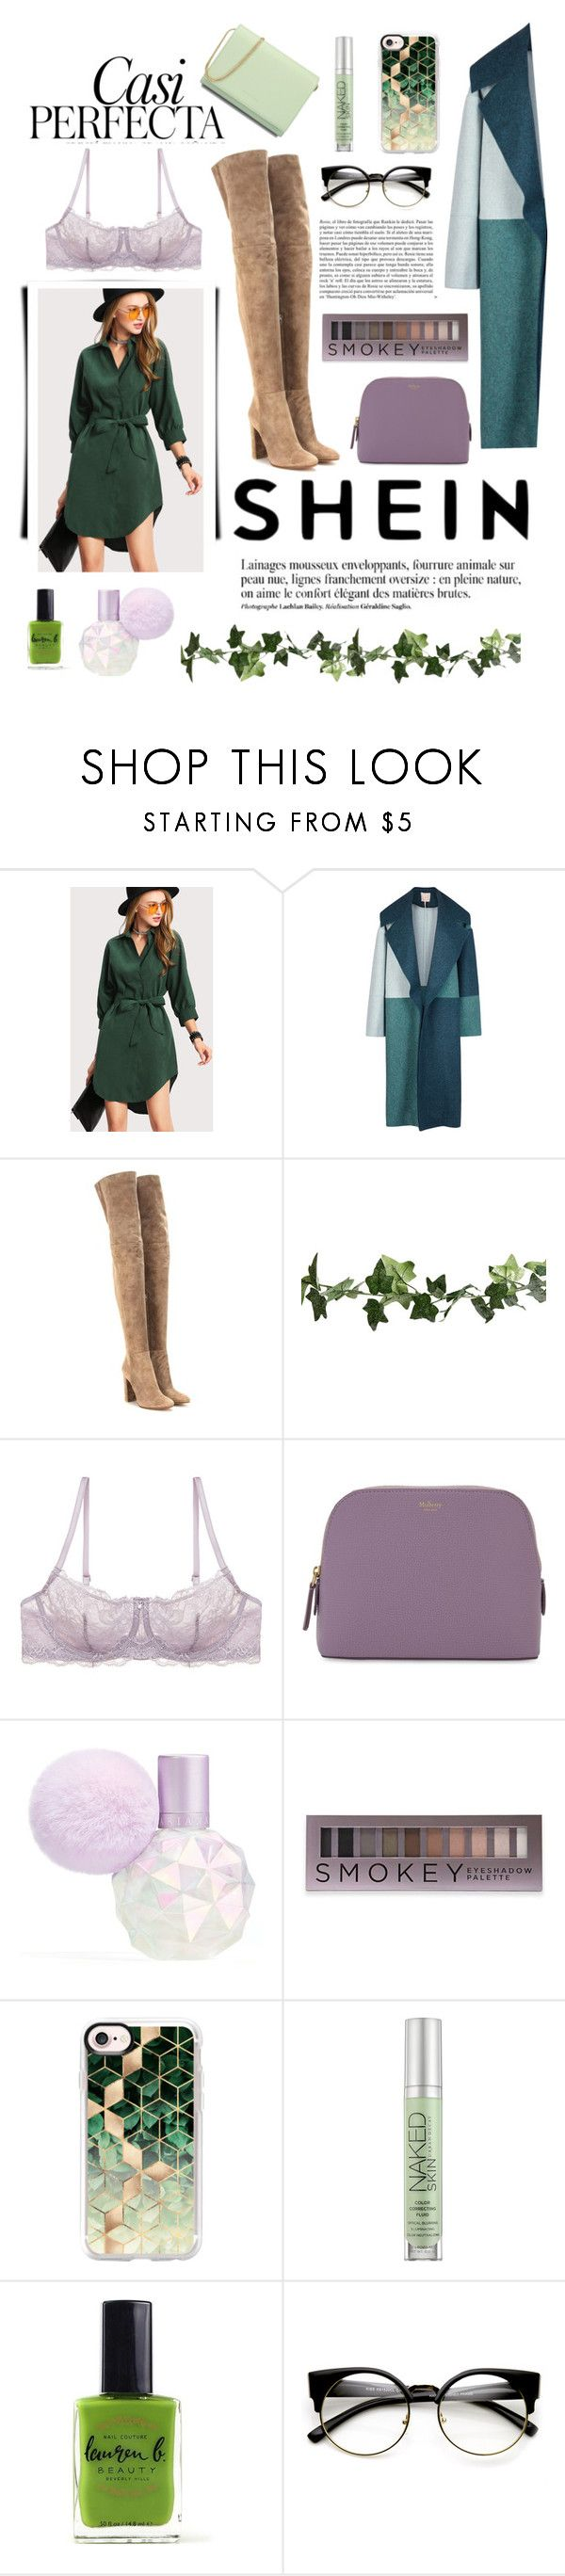 """Sin título #96"" by lapepafausti ❤ liked on Polyvore featuring Roksanda Ilincic, Gianvito Rossi, Gossard, Mulberry, Anja, Forever 21, Whiteley, Casetify, Urban Decay and ZeroUV"